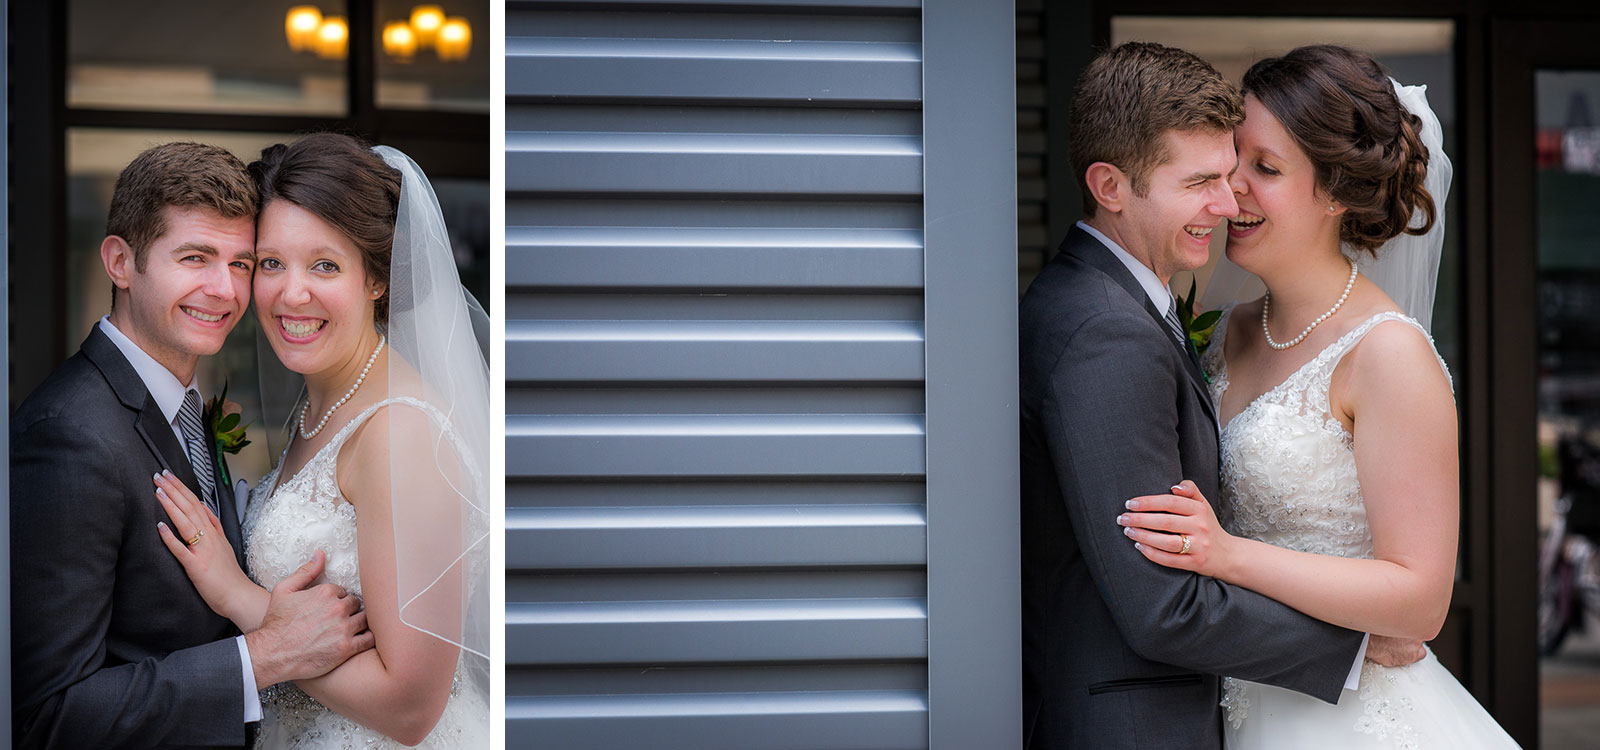 Eric_and_Christy_Photography_Blog_Wedding_Kelly_Michael-39-40